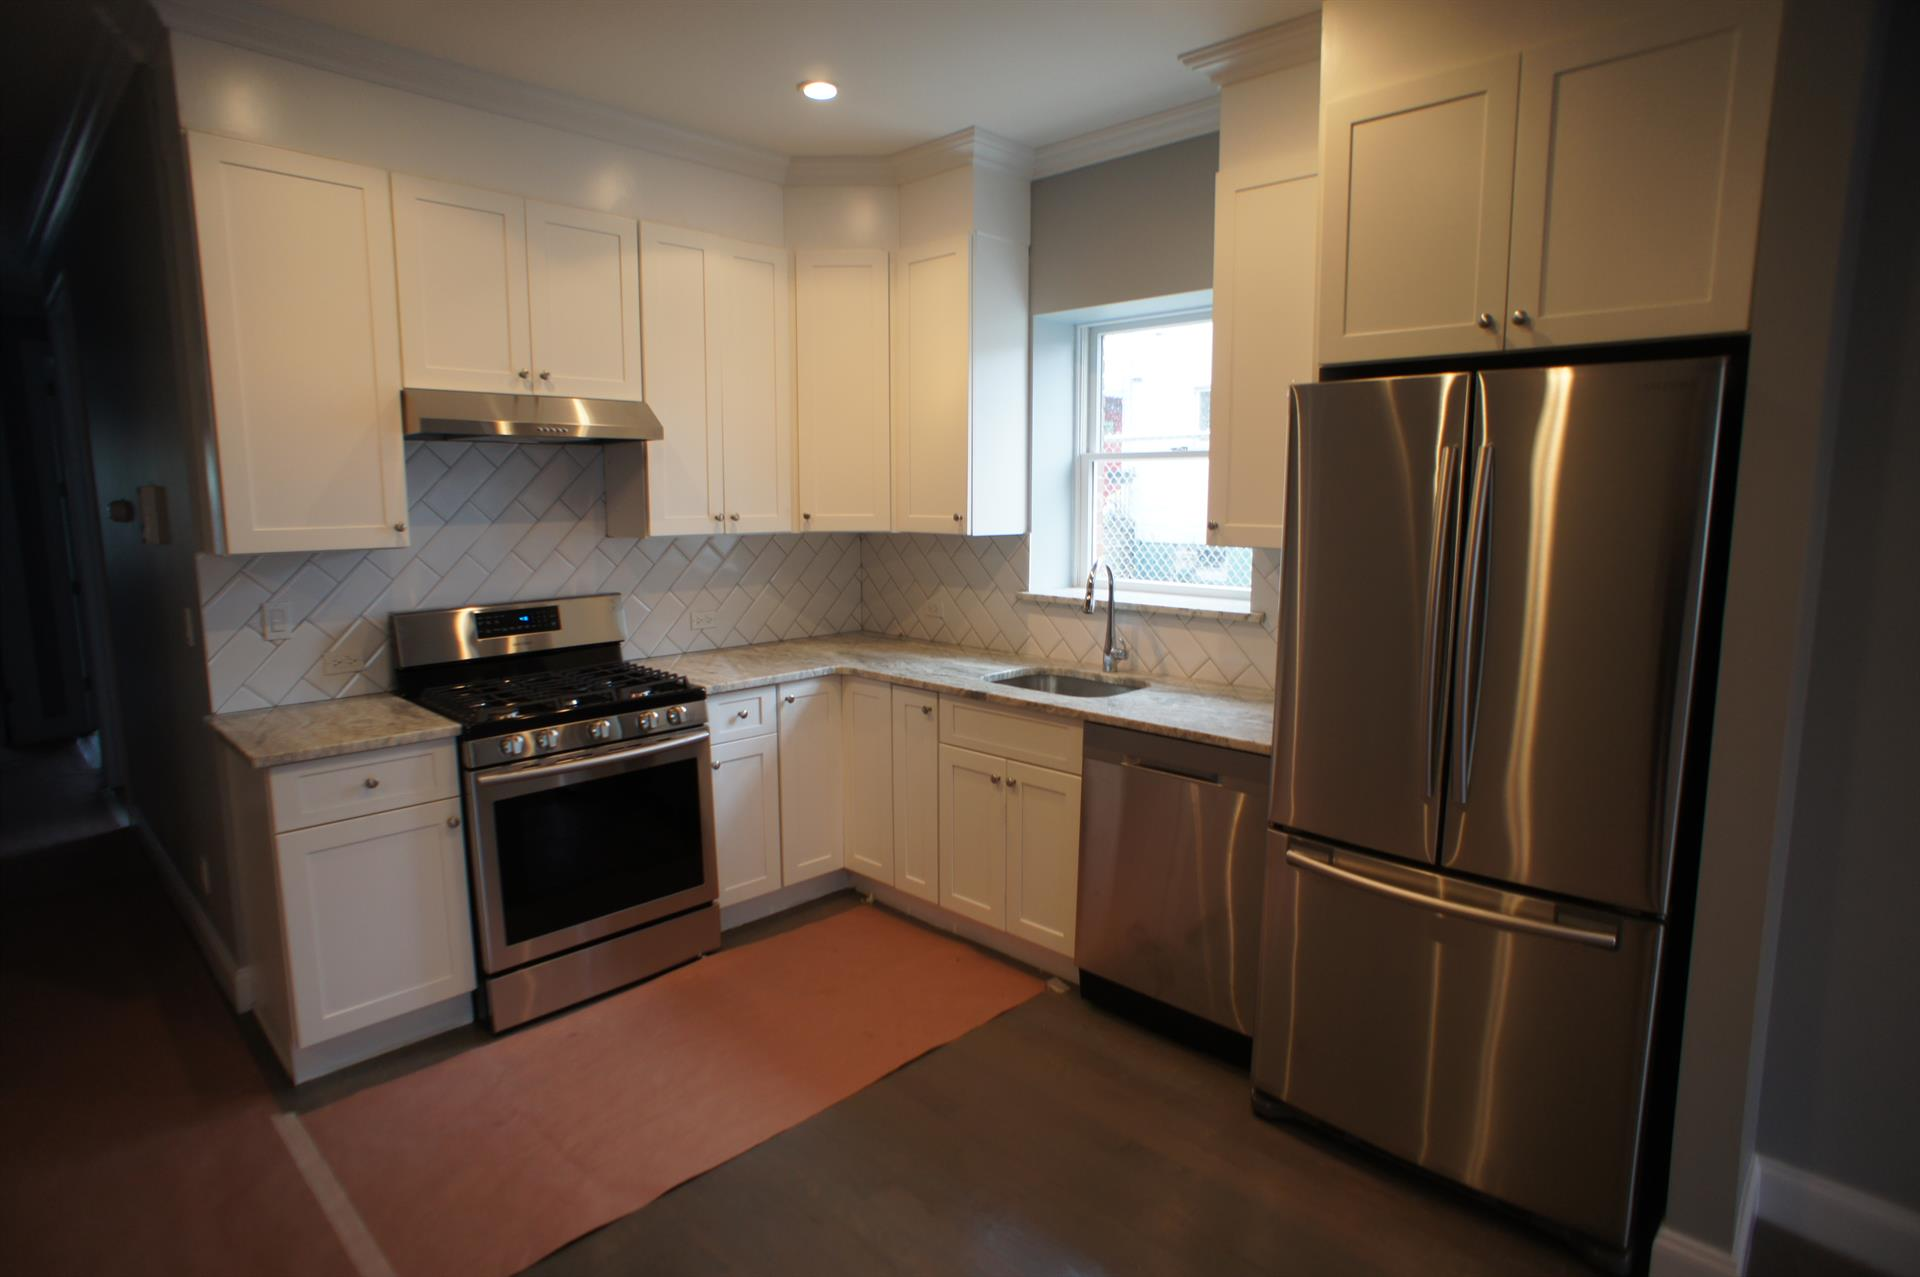 Additional photo for property listing at 1842 79th Street #1b  Brooklyn, New York 11214 United States